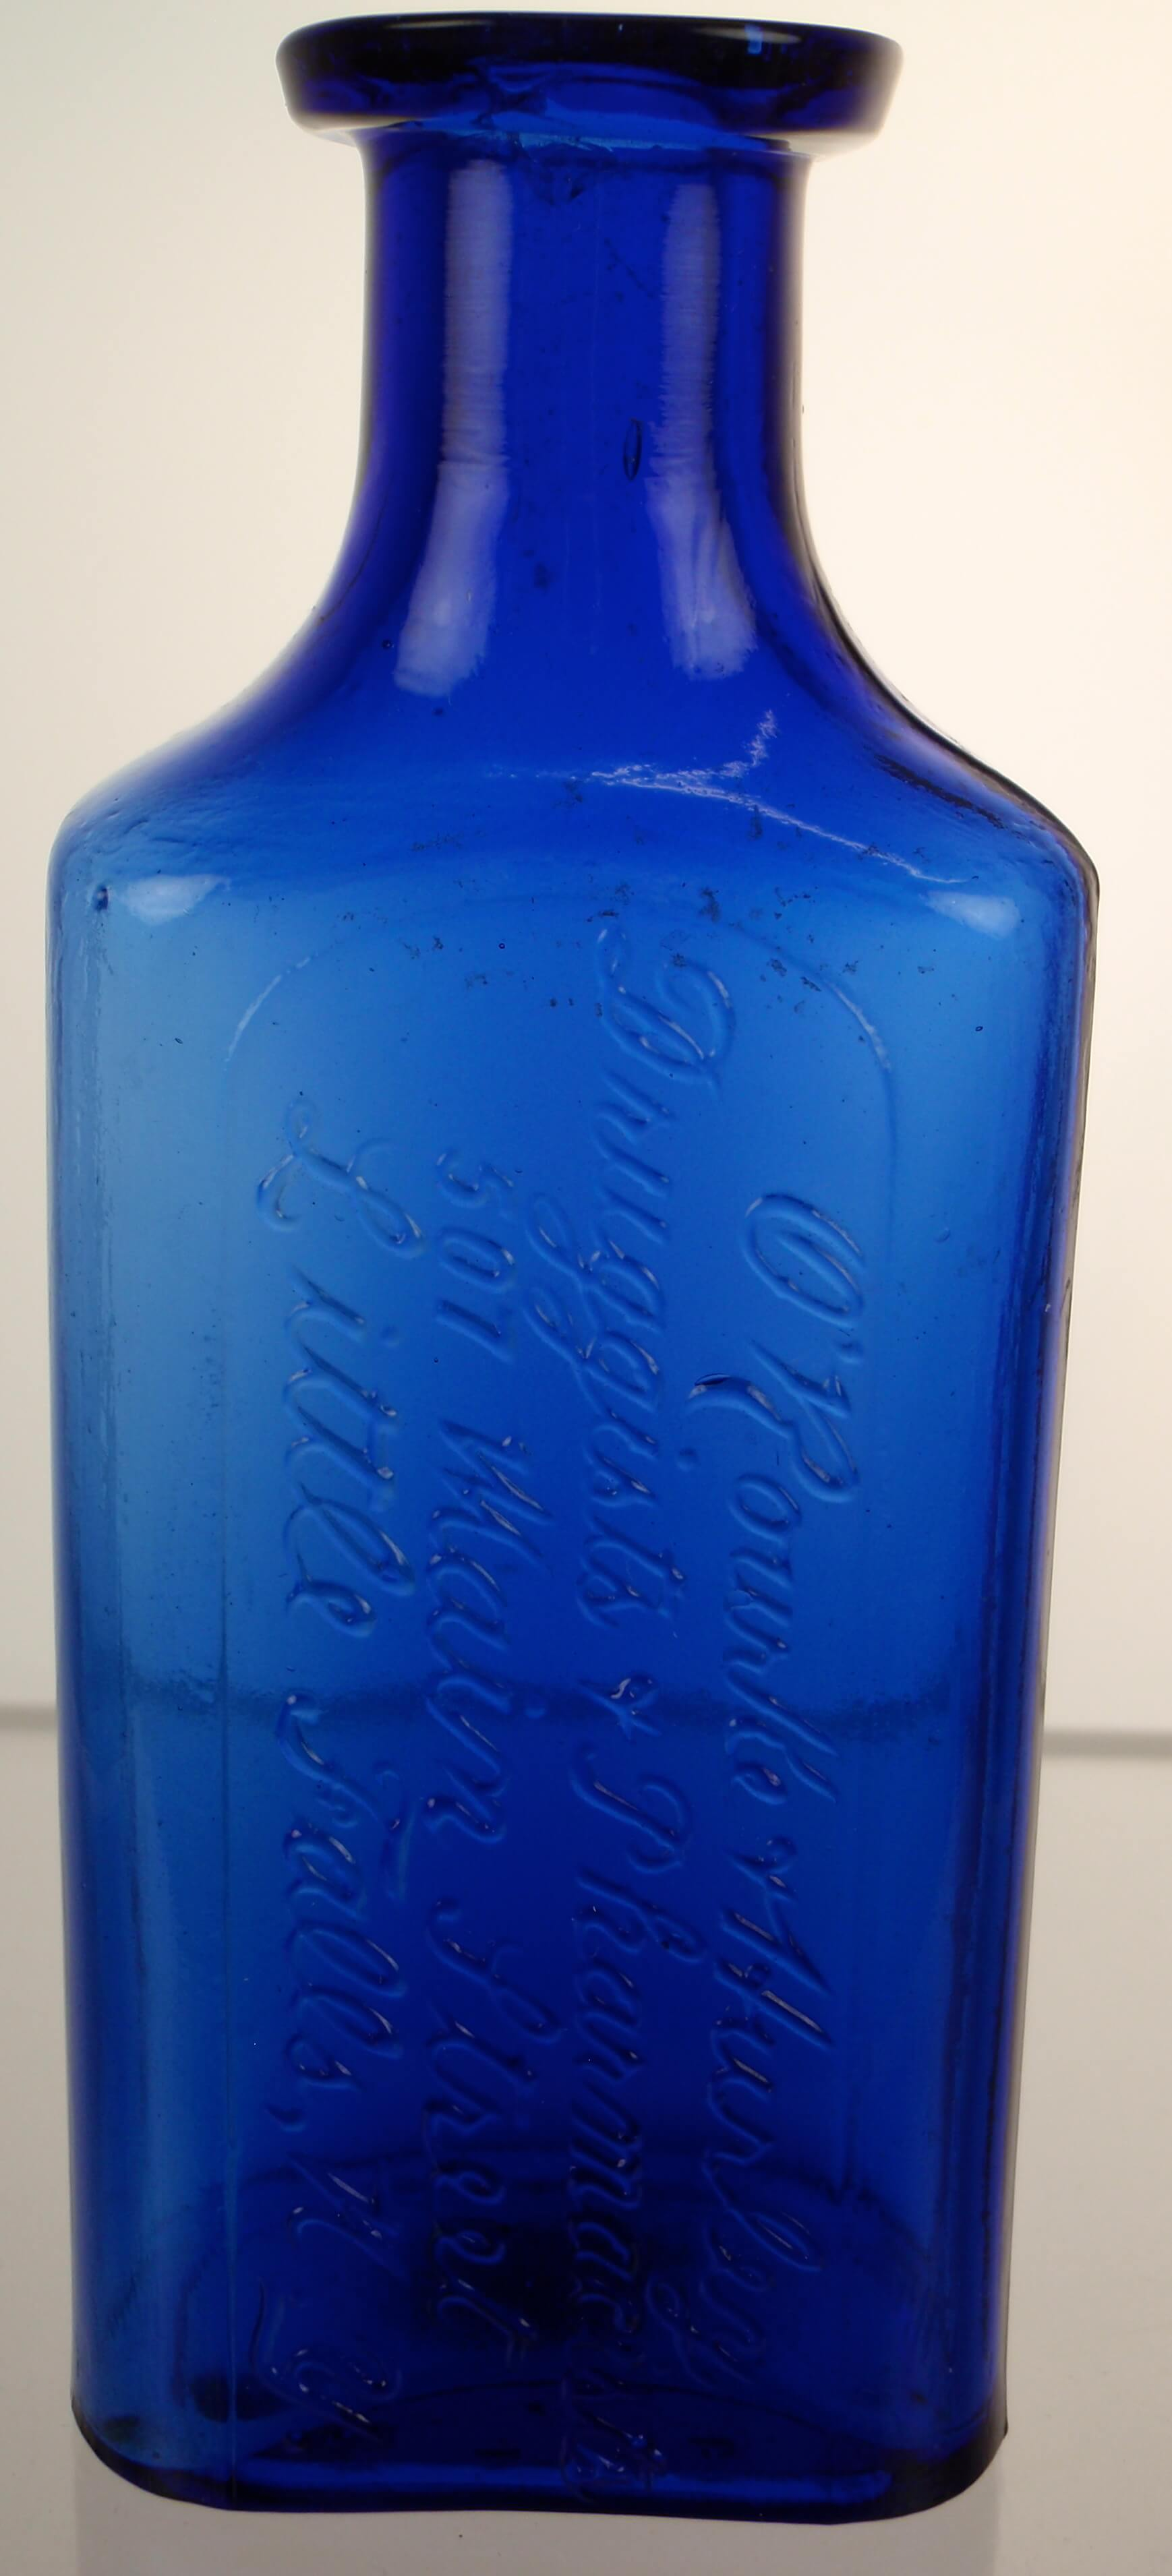 ORourke & Hurley Druggists & Pharmacists Little Falls New York Cobalt Blue Bottle